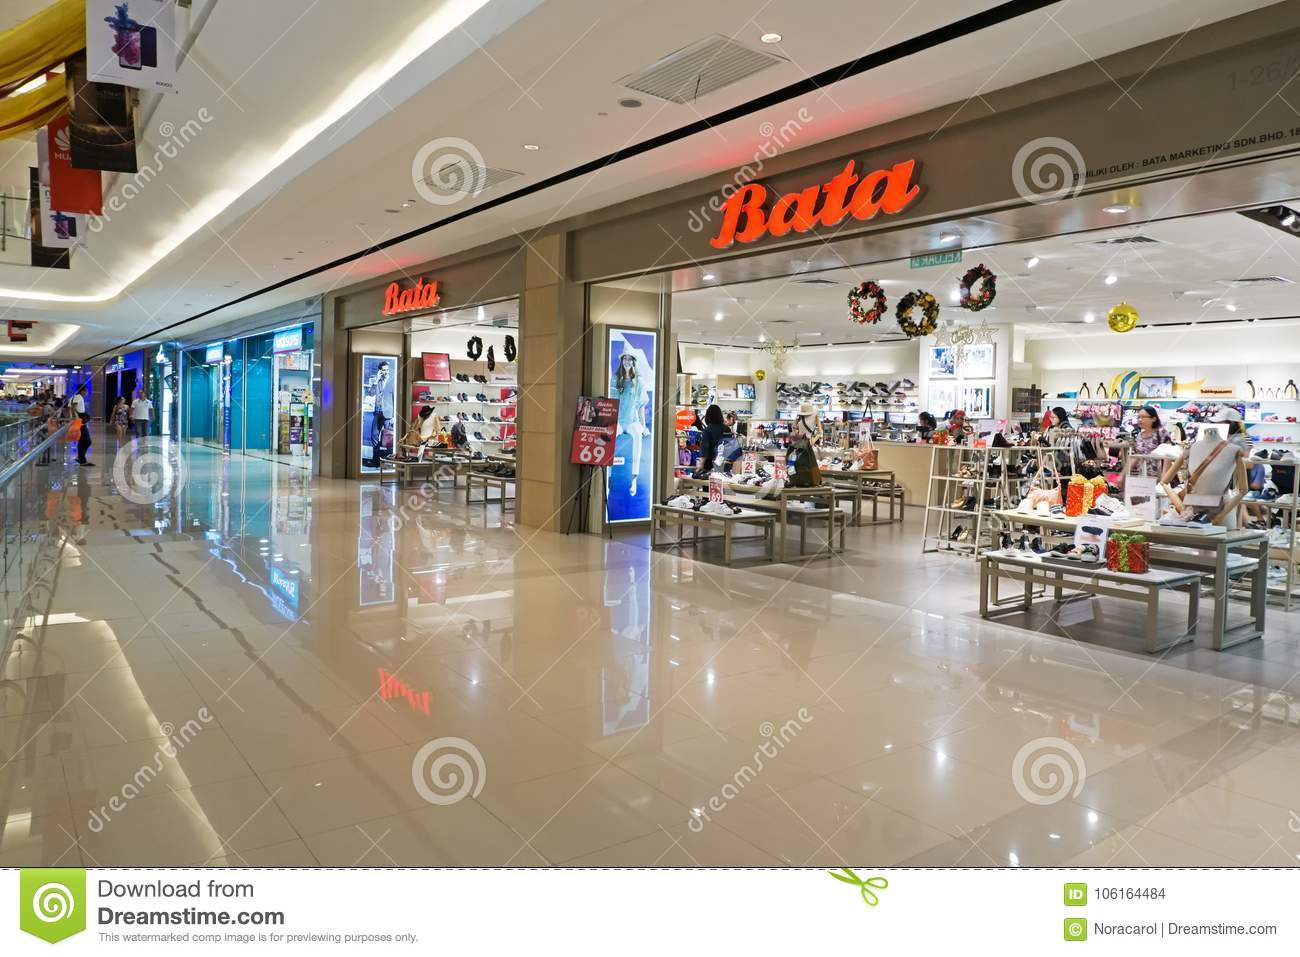 d2814eae715d Bata Store At Kota Kinabalu Editorial Stock Image - Image of ...